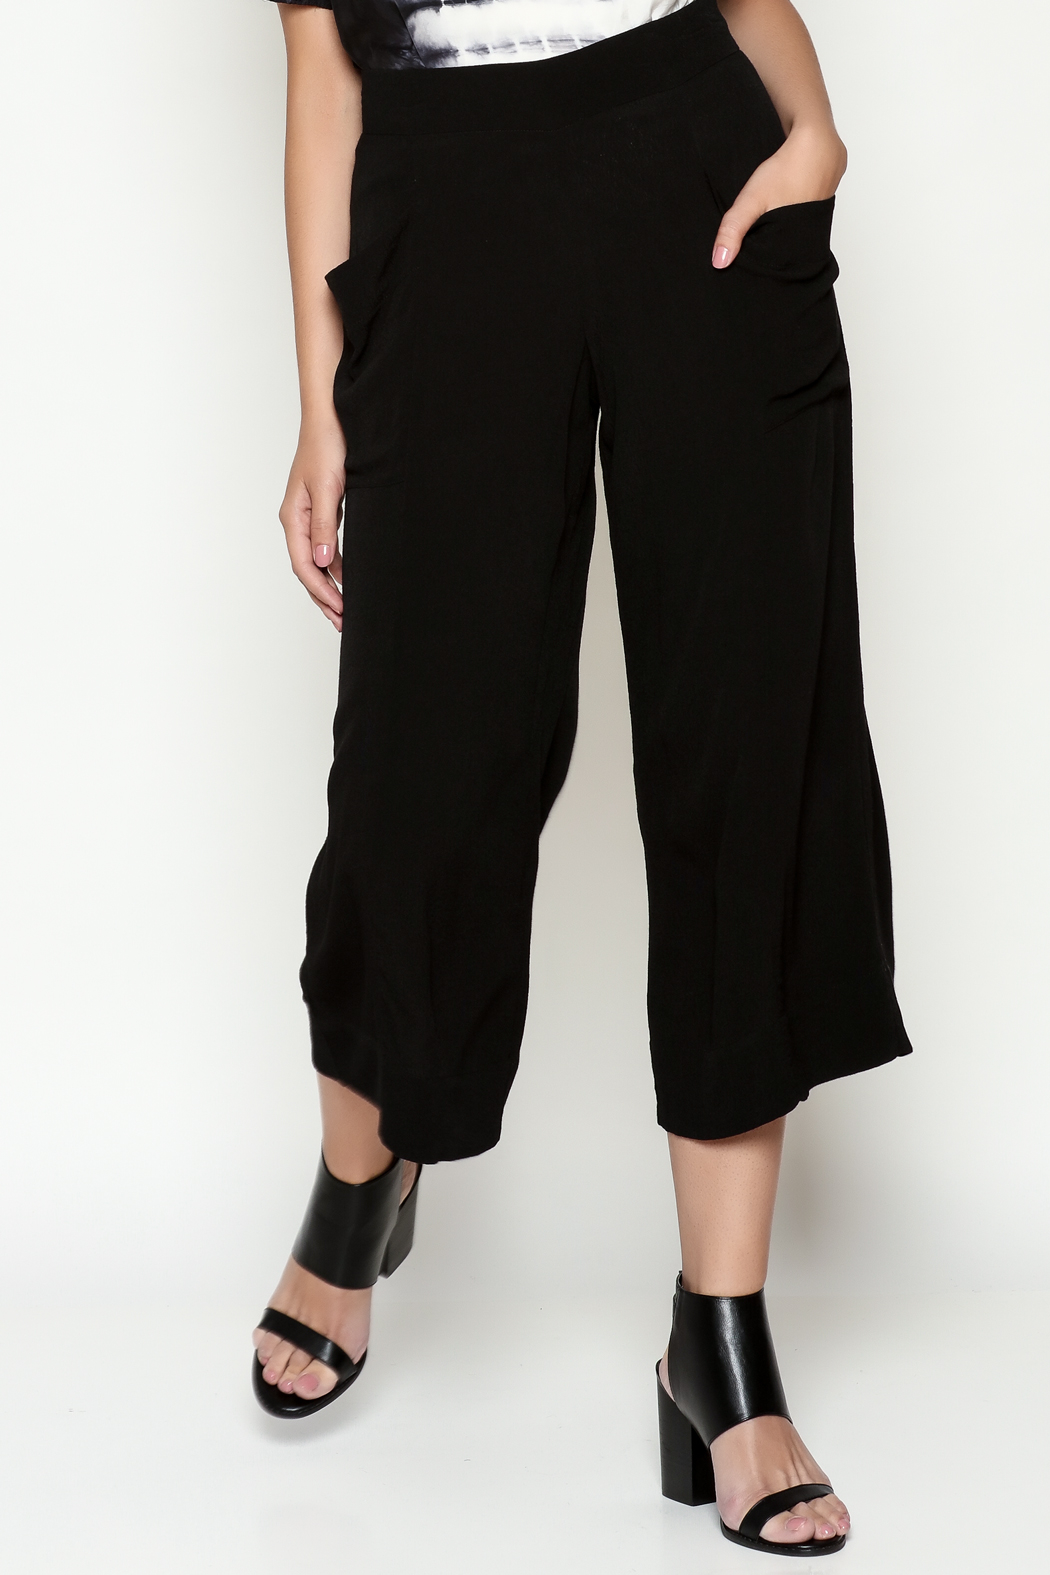 Cousin Earl Black Palazzo Pants - Front Cropped Image